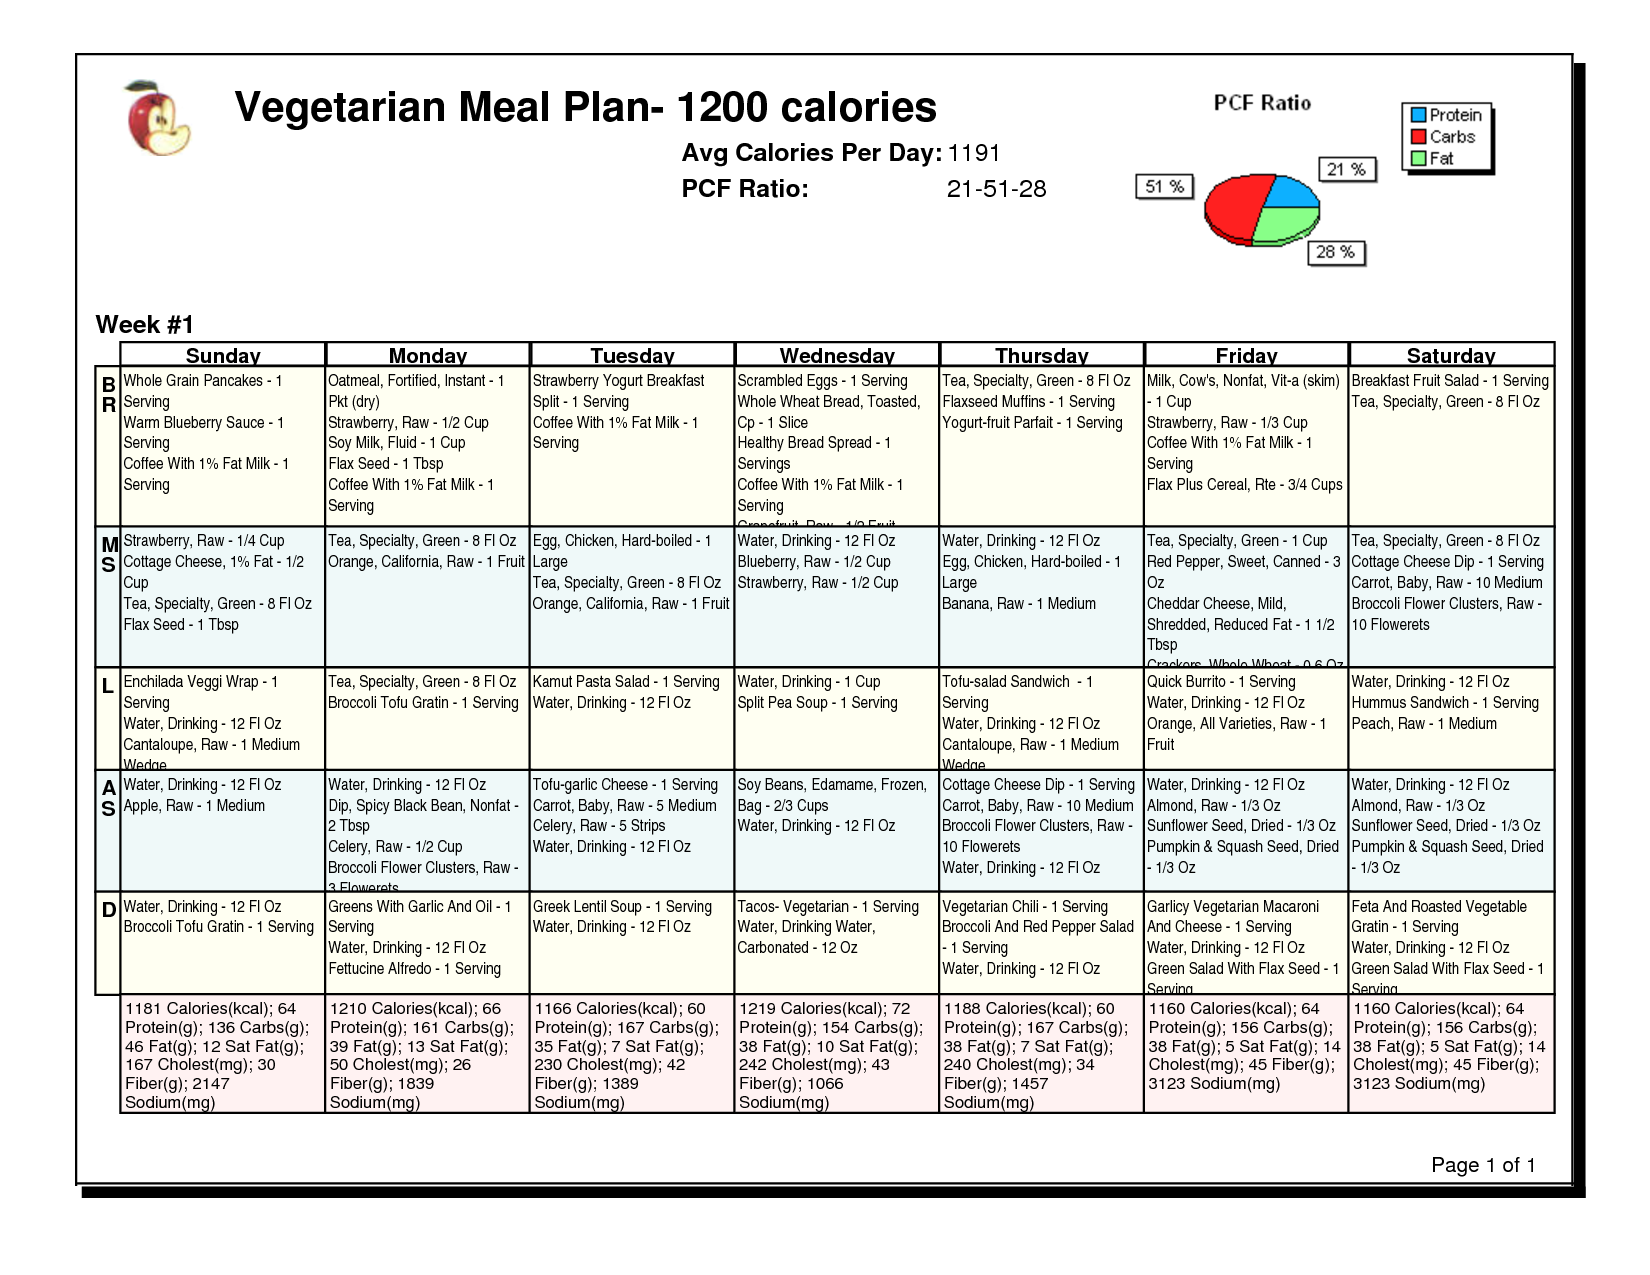 lose weight diet plan menu